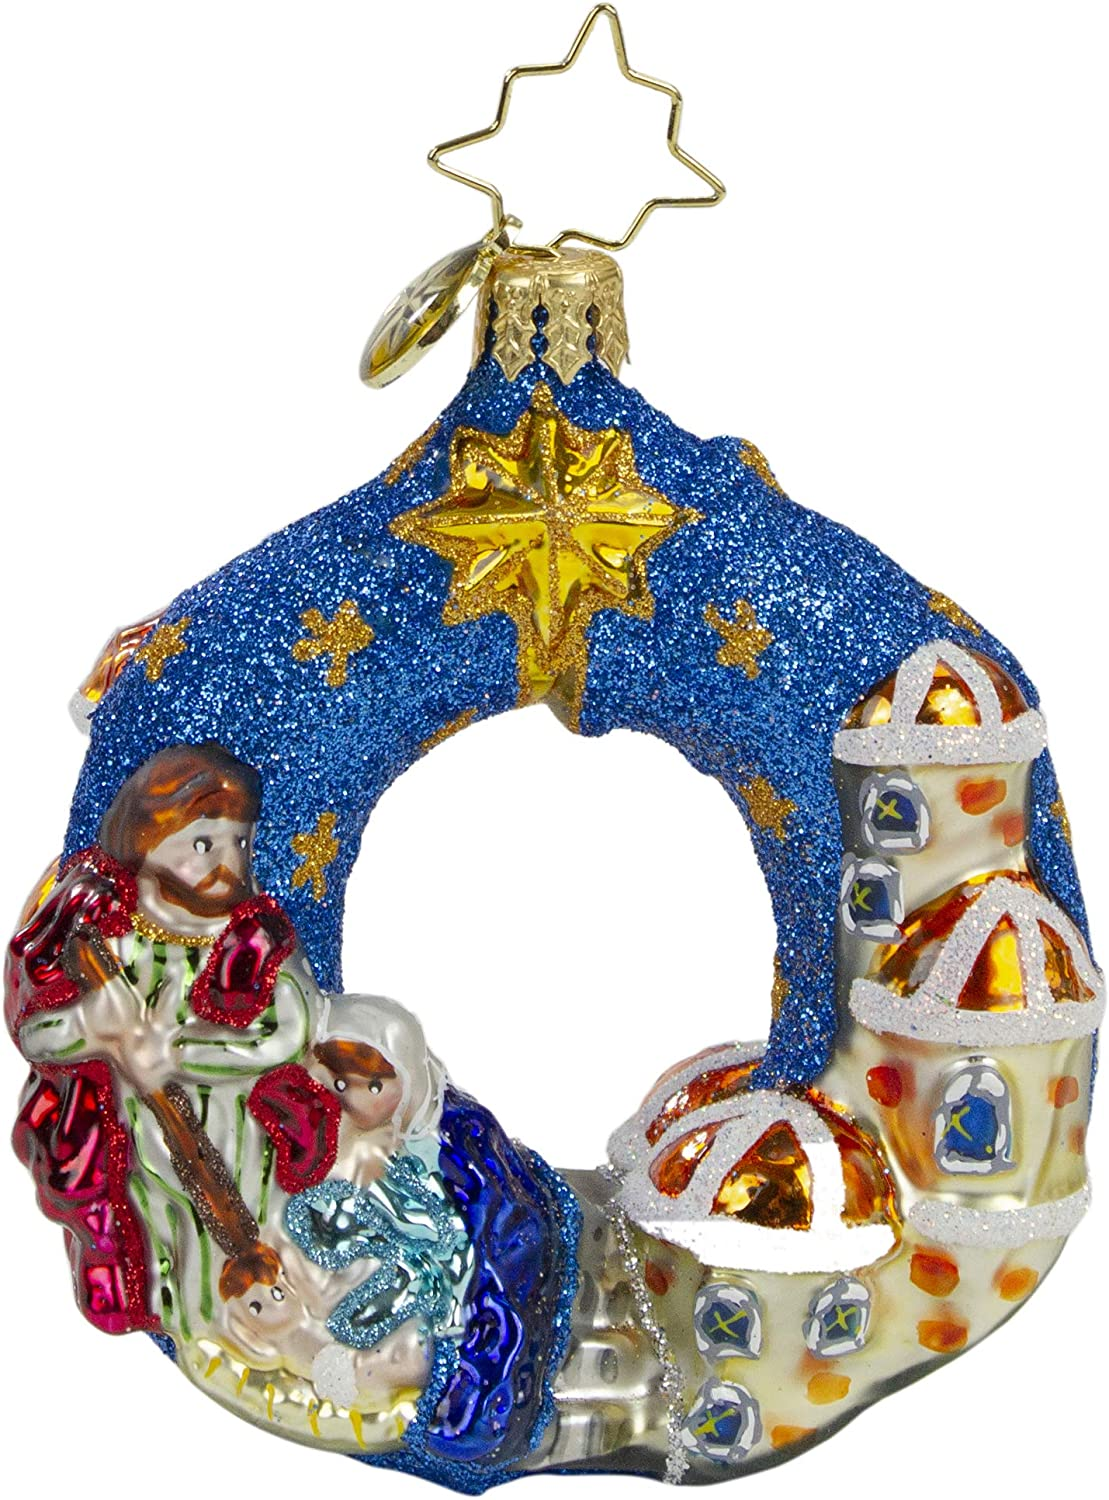 Christopher Radko Hand-Crafted Max 76% At the price OFF European Ornament Christmas Glass